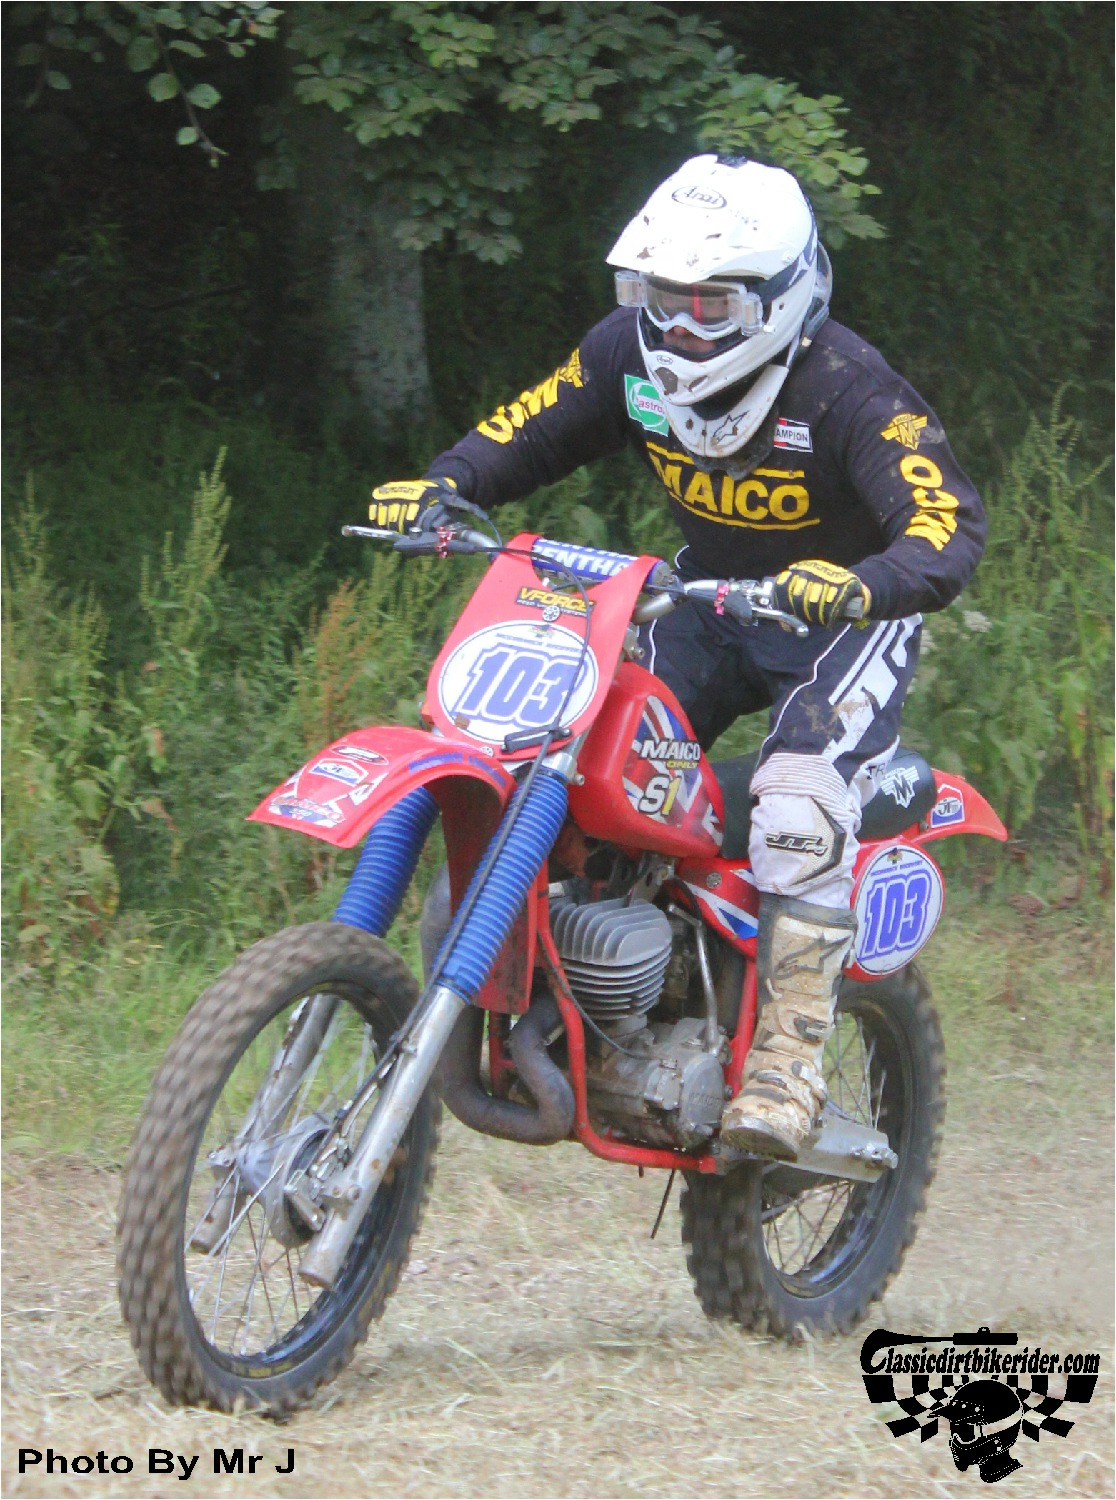 king of the castle 2015 photos Farleigh Castle twinshock motocross classicdirtbikerider.com 47